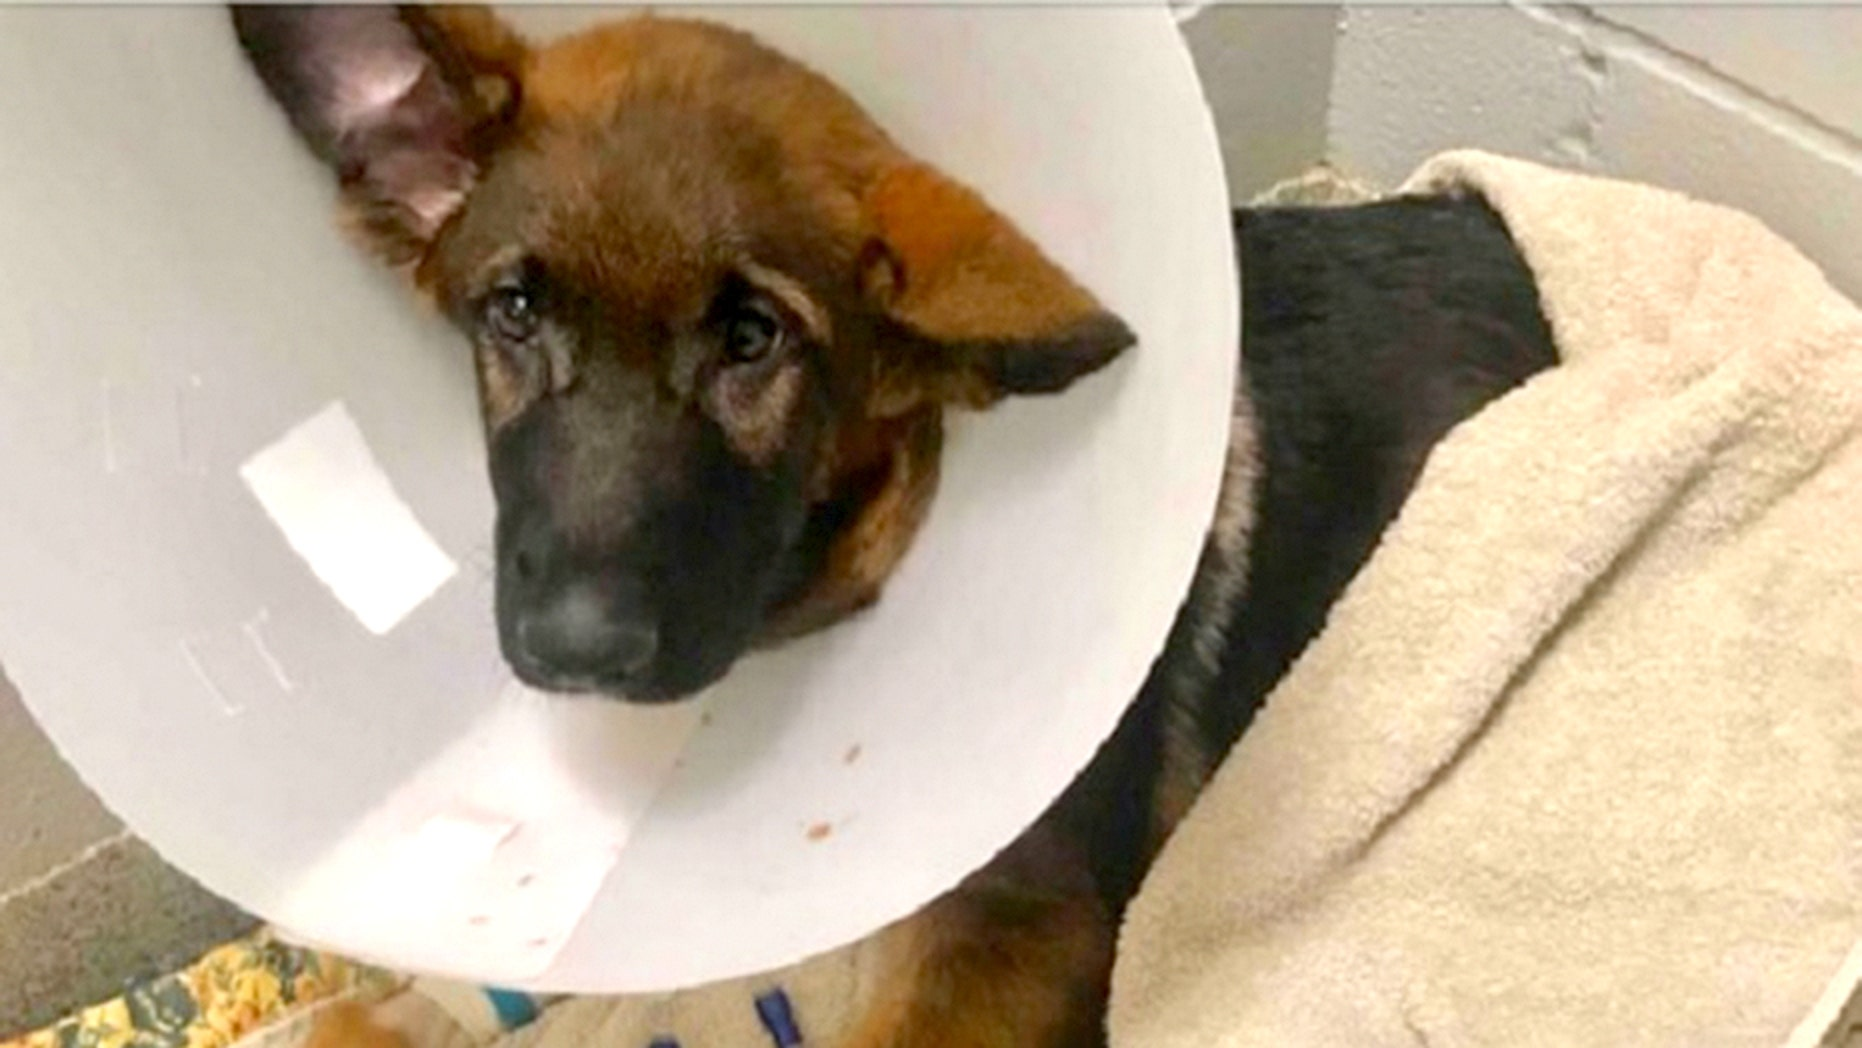 A dog named Atlas was abused so severely it died in February, cops say.